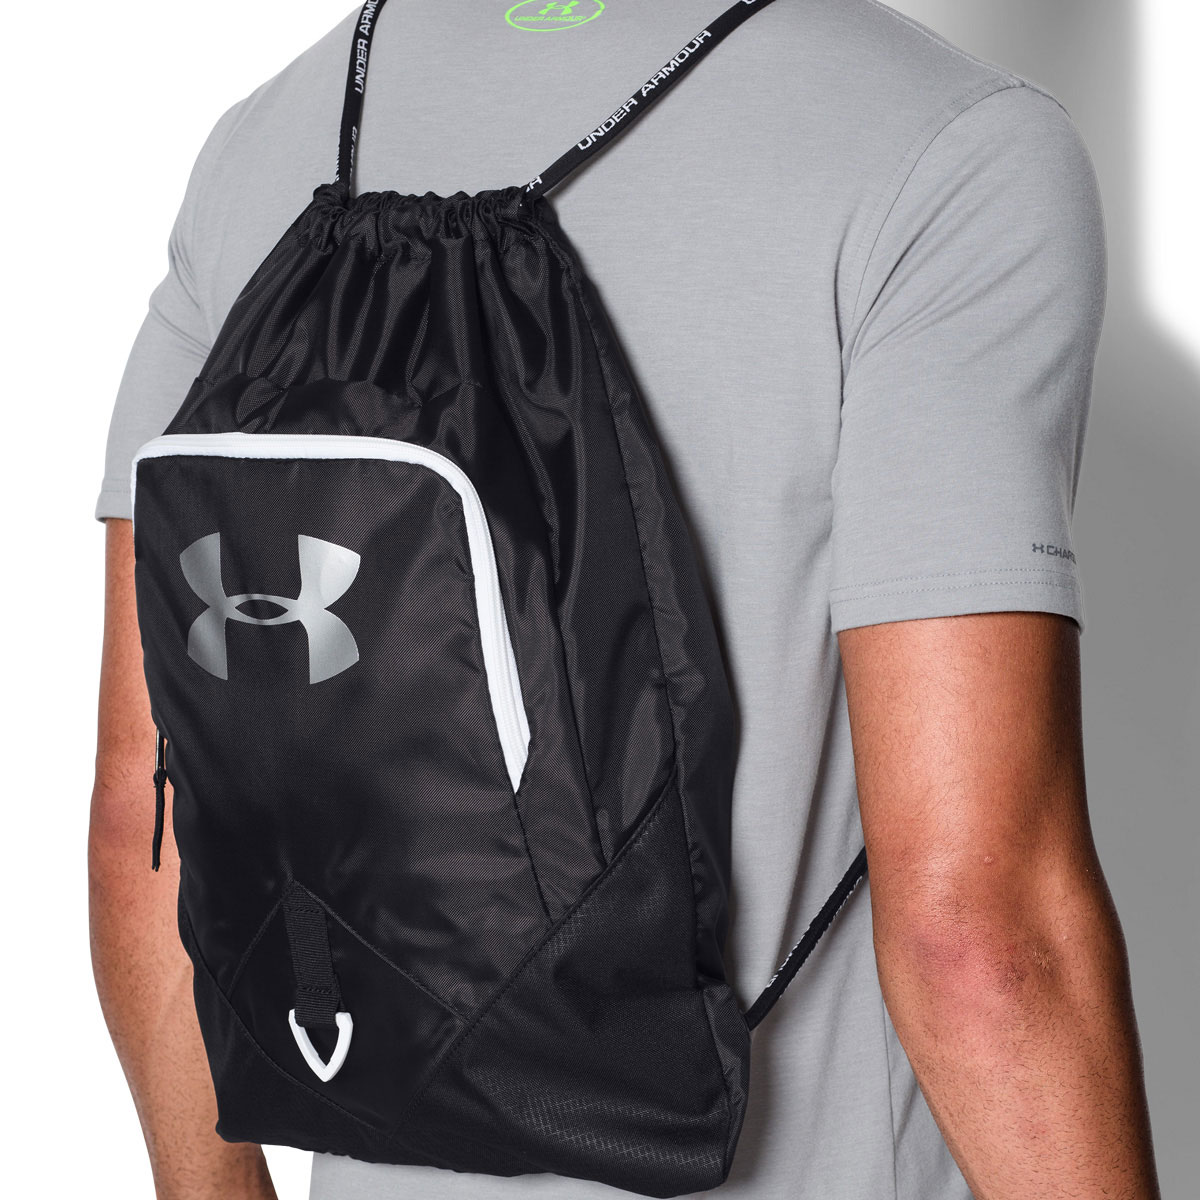 Under Armour UA Undeniable Sackpack Drawstring Rucksack Gym Bag 57 ... efc52d8089bd0